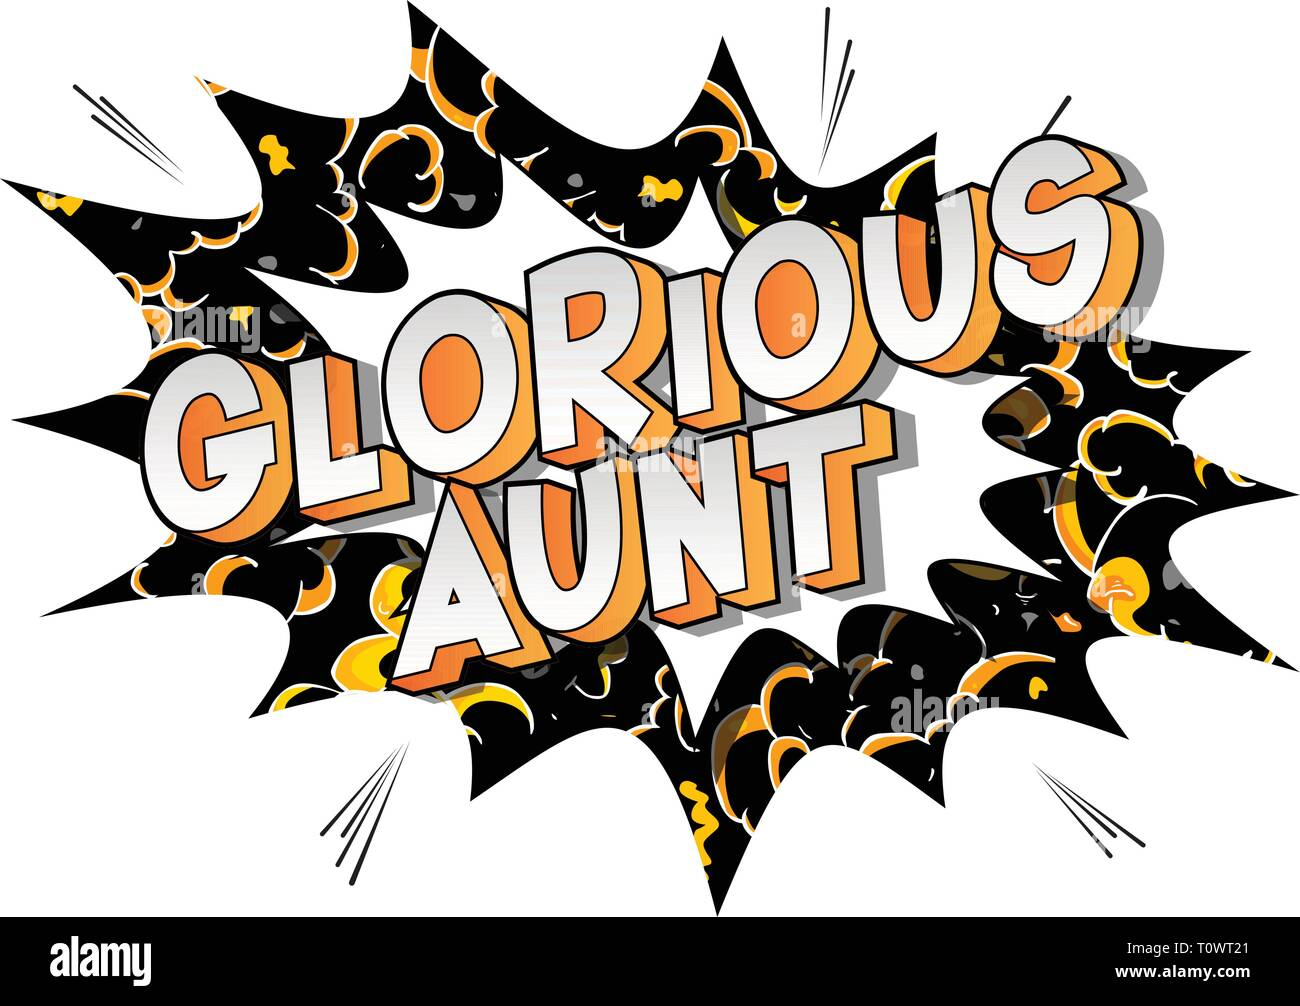 Glorious Aunt - Vector illustrated comic book style phrase on abstract background. - Stock Image